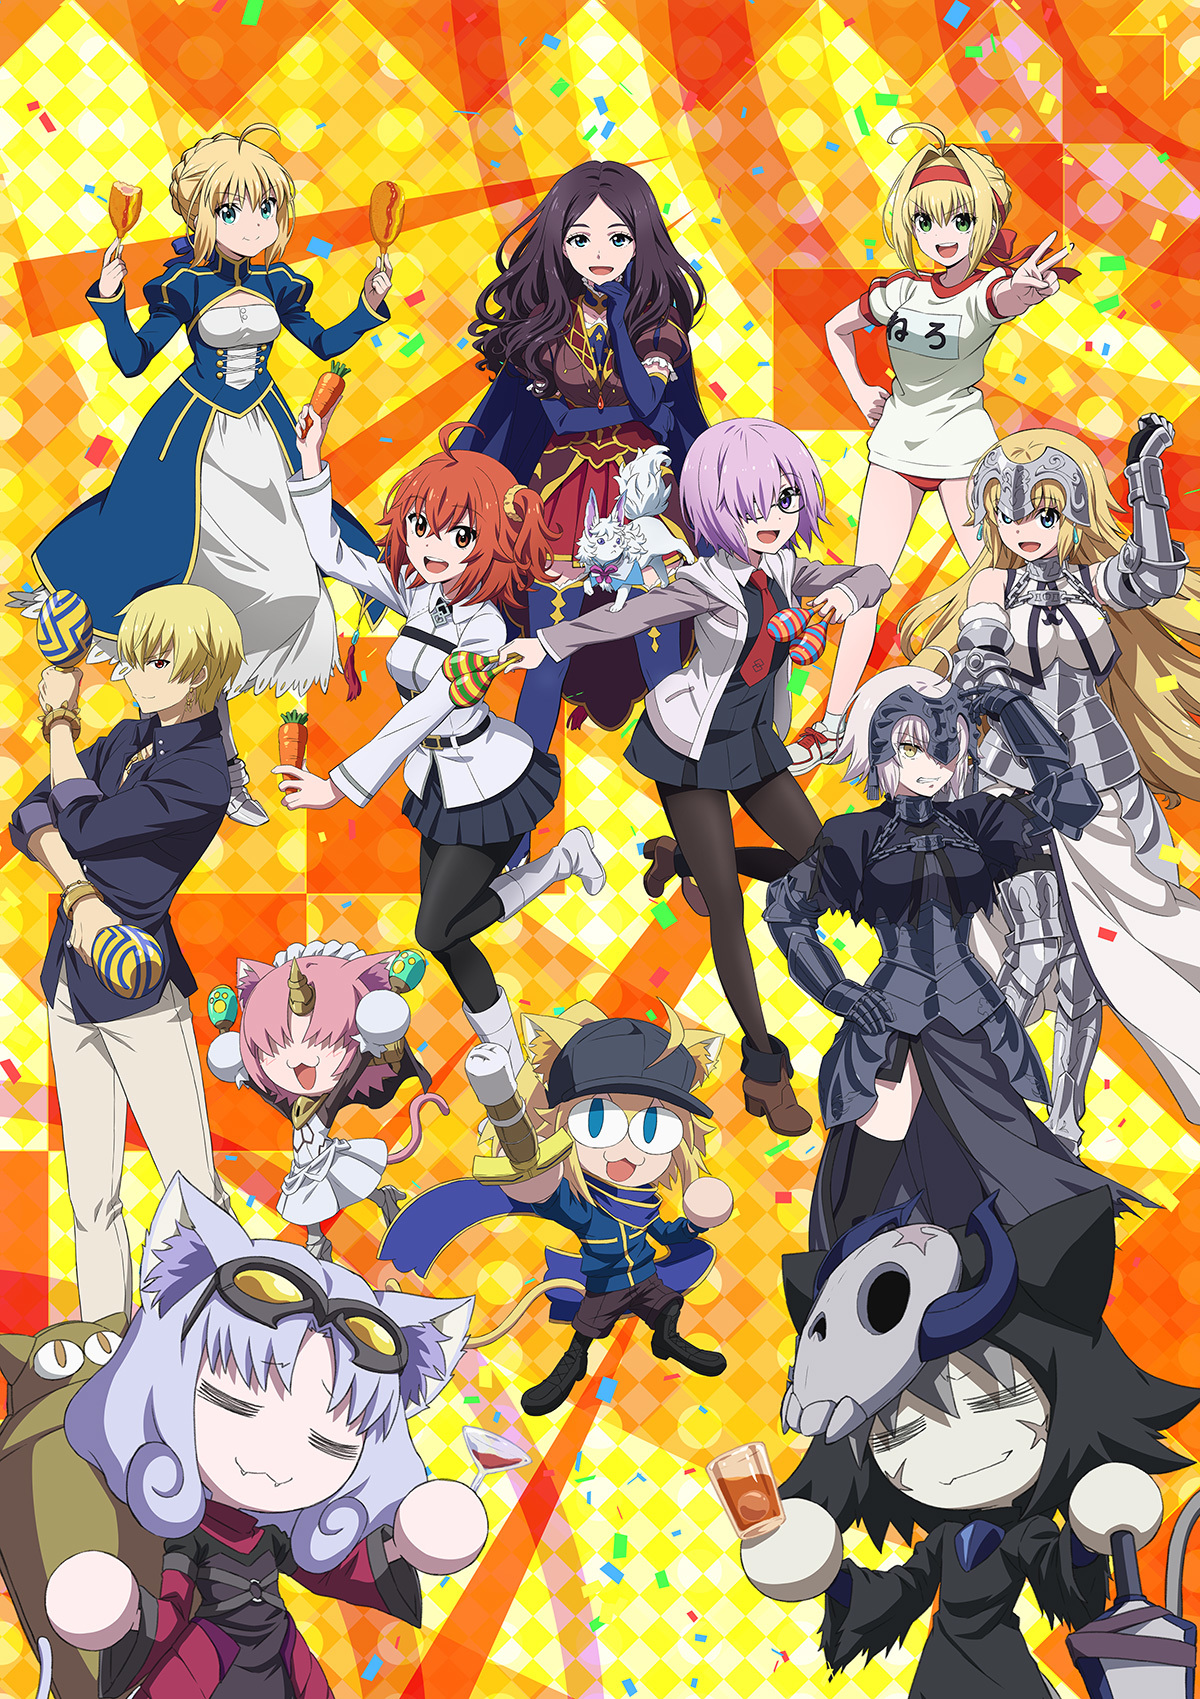 『Fate/Grand Carnival』最新キービジュアル (C)TYPE-MOON / FGC PROJECT